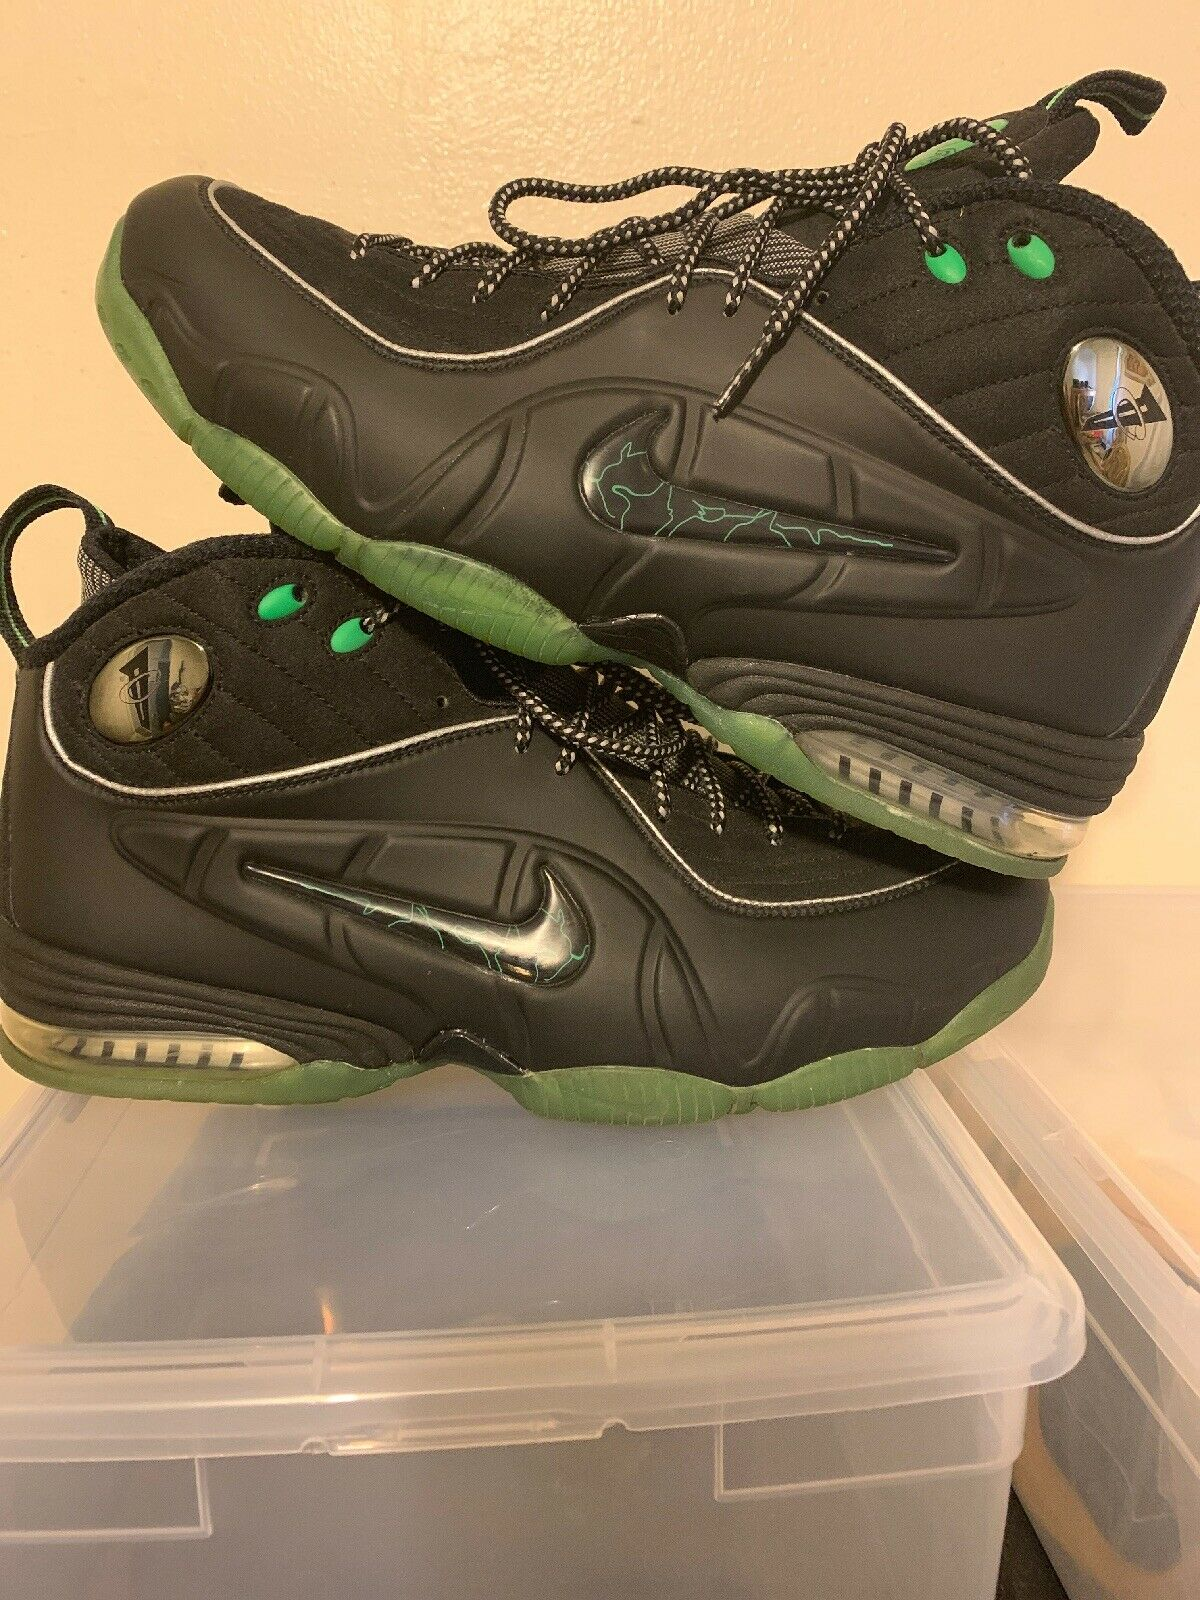 Nike Air 2009 Penny Hardaway 1 2 Half Cent Black Green 344646-002 Size 11 worn